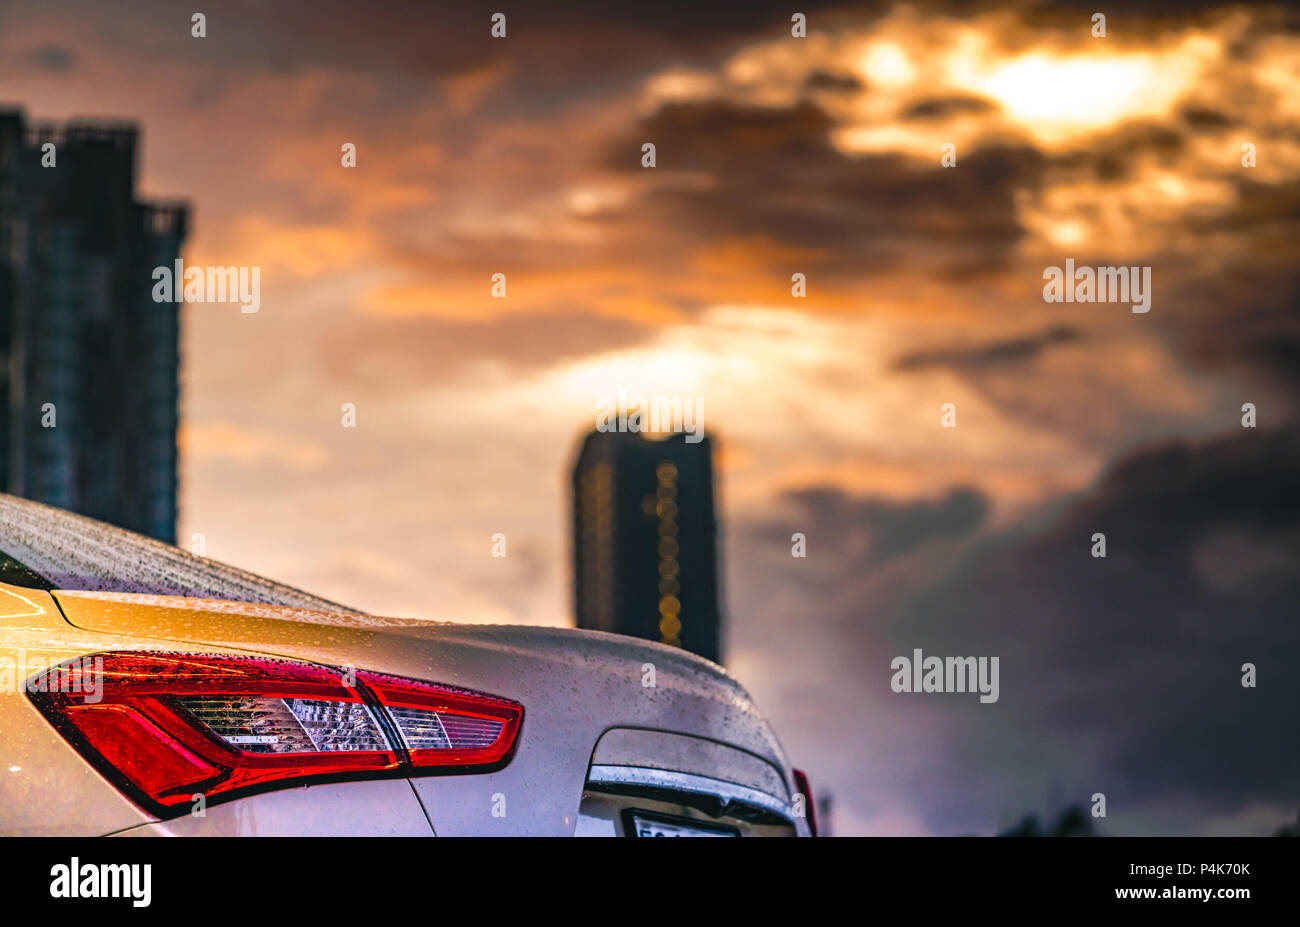 Rear view of car parked in the city near high building after rain with grey and orange sky and clouds and have water droplet on surface of car. Hybrid - Stock Image